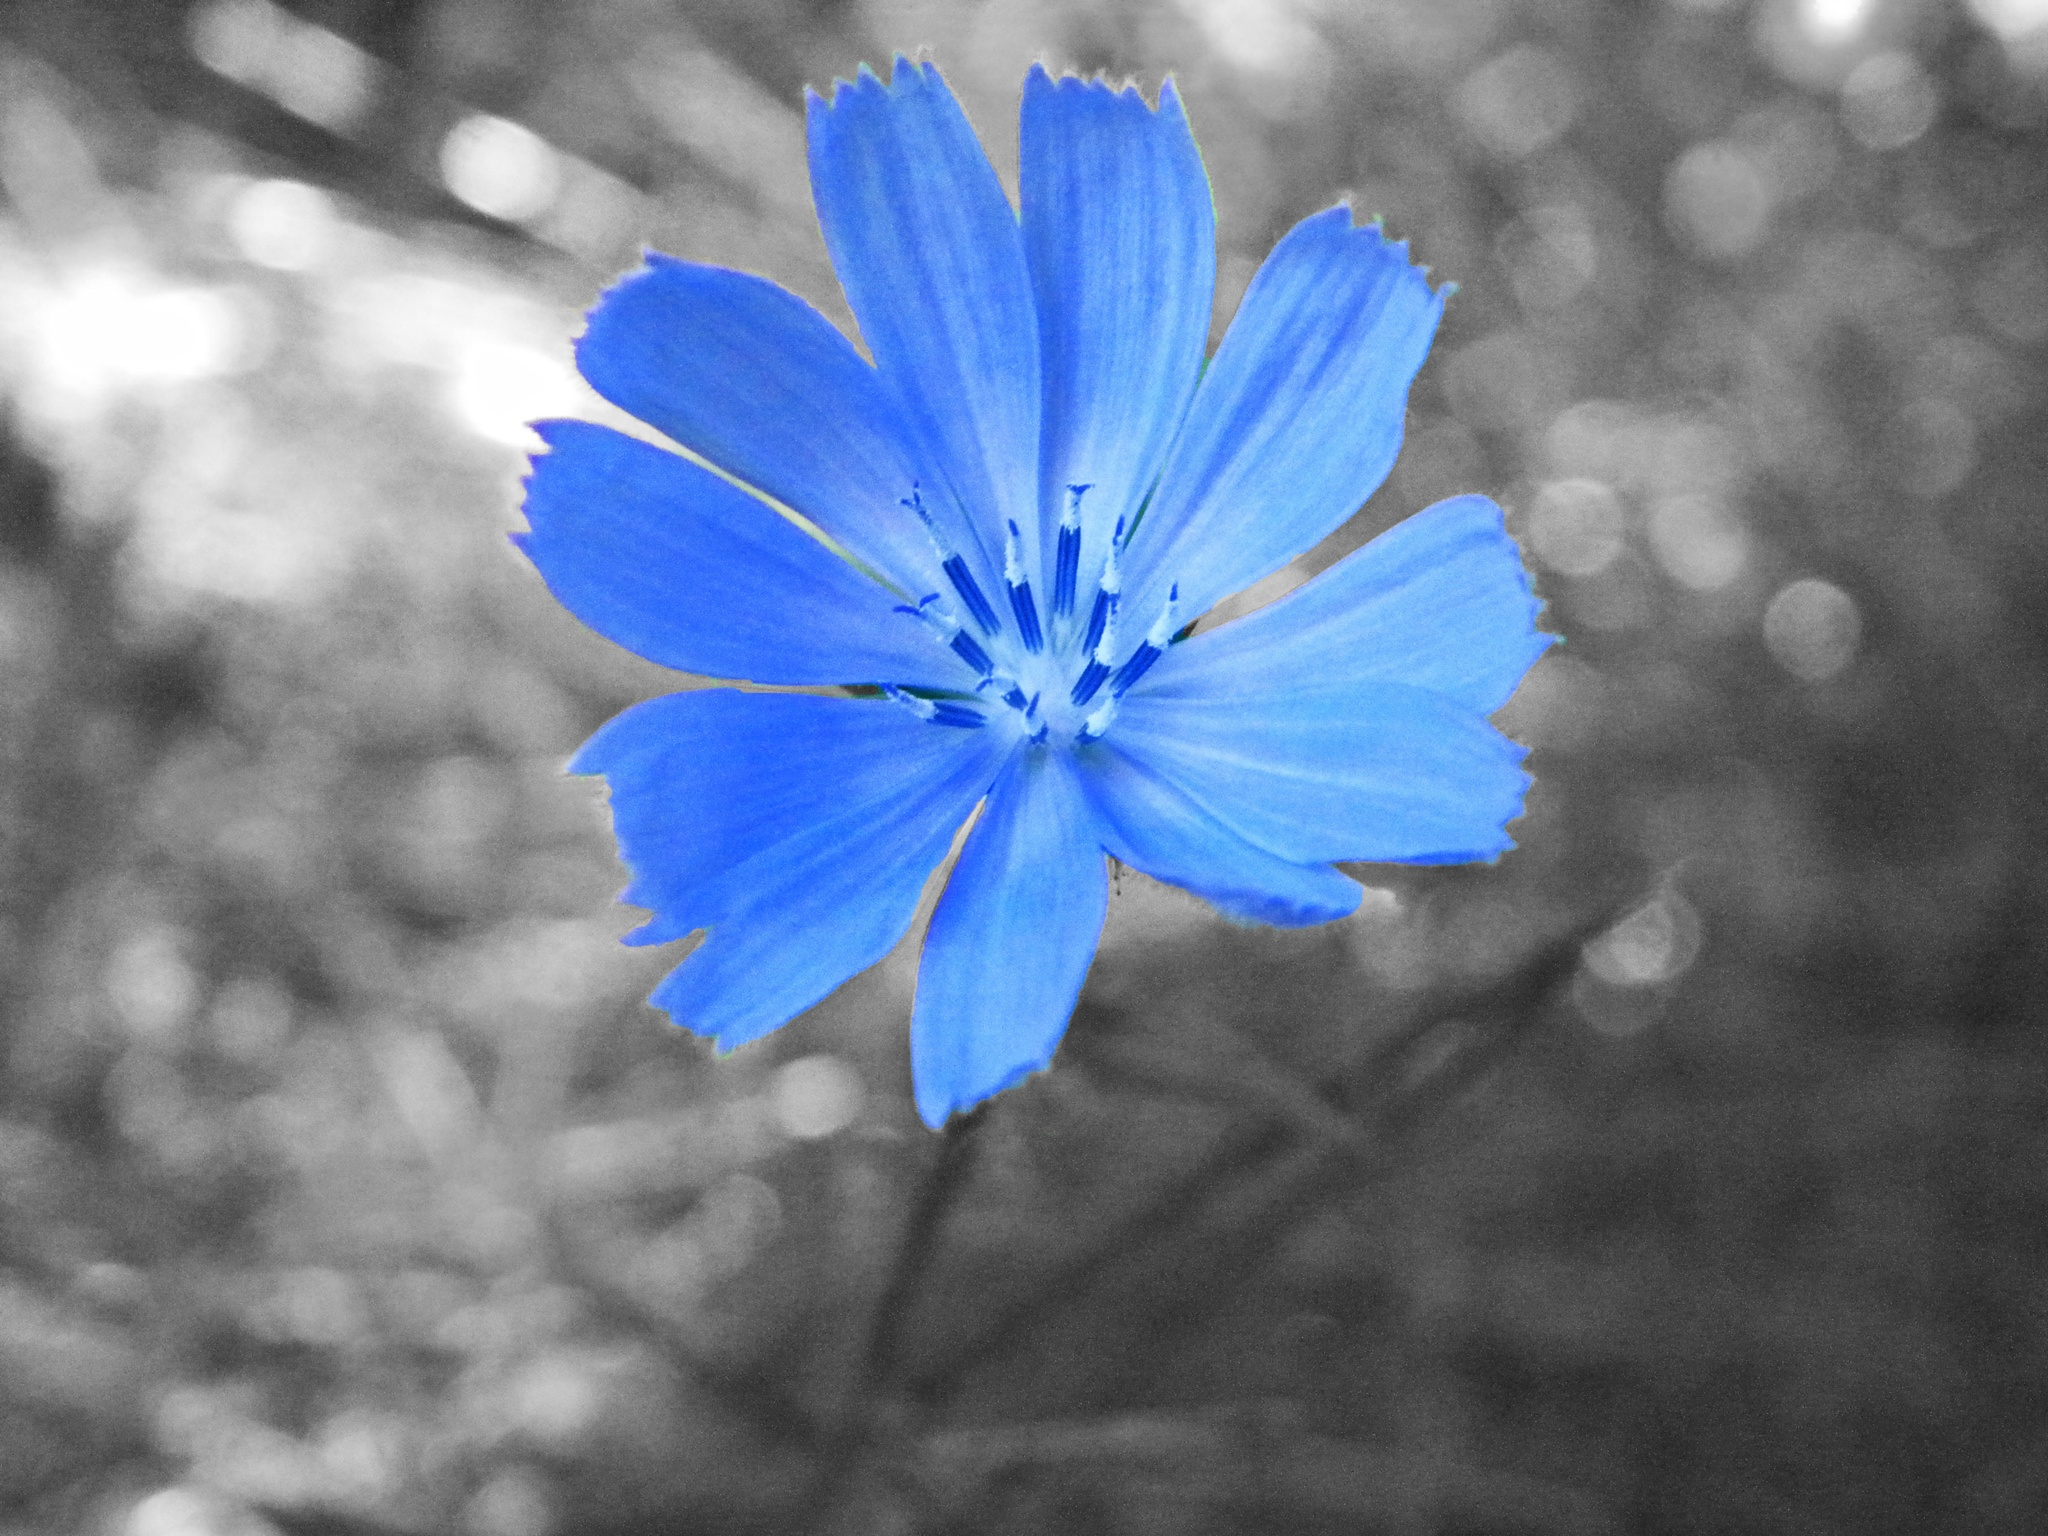 Chicory Stand Out by Phillip W. Strunk